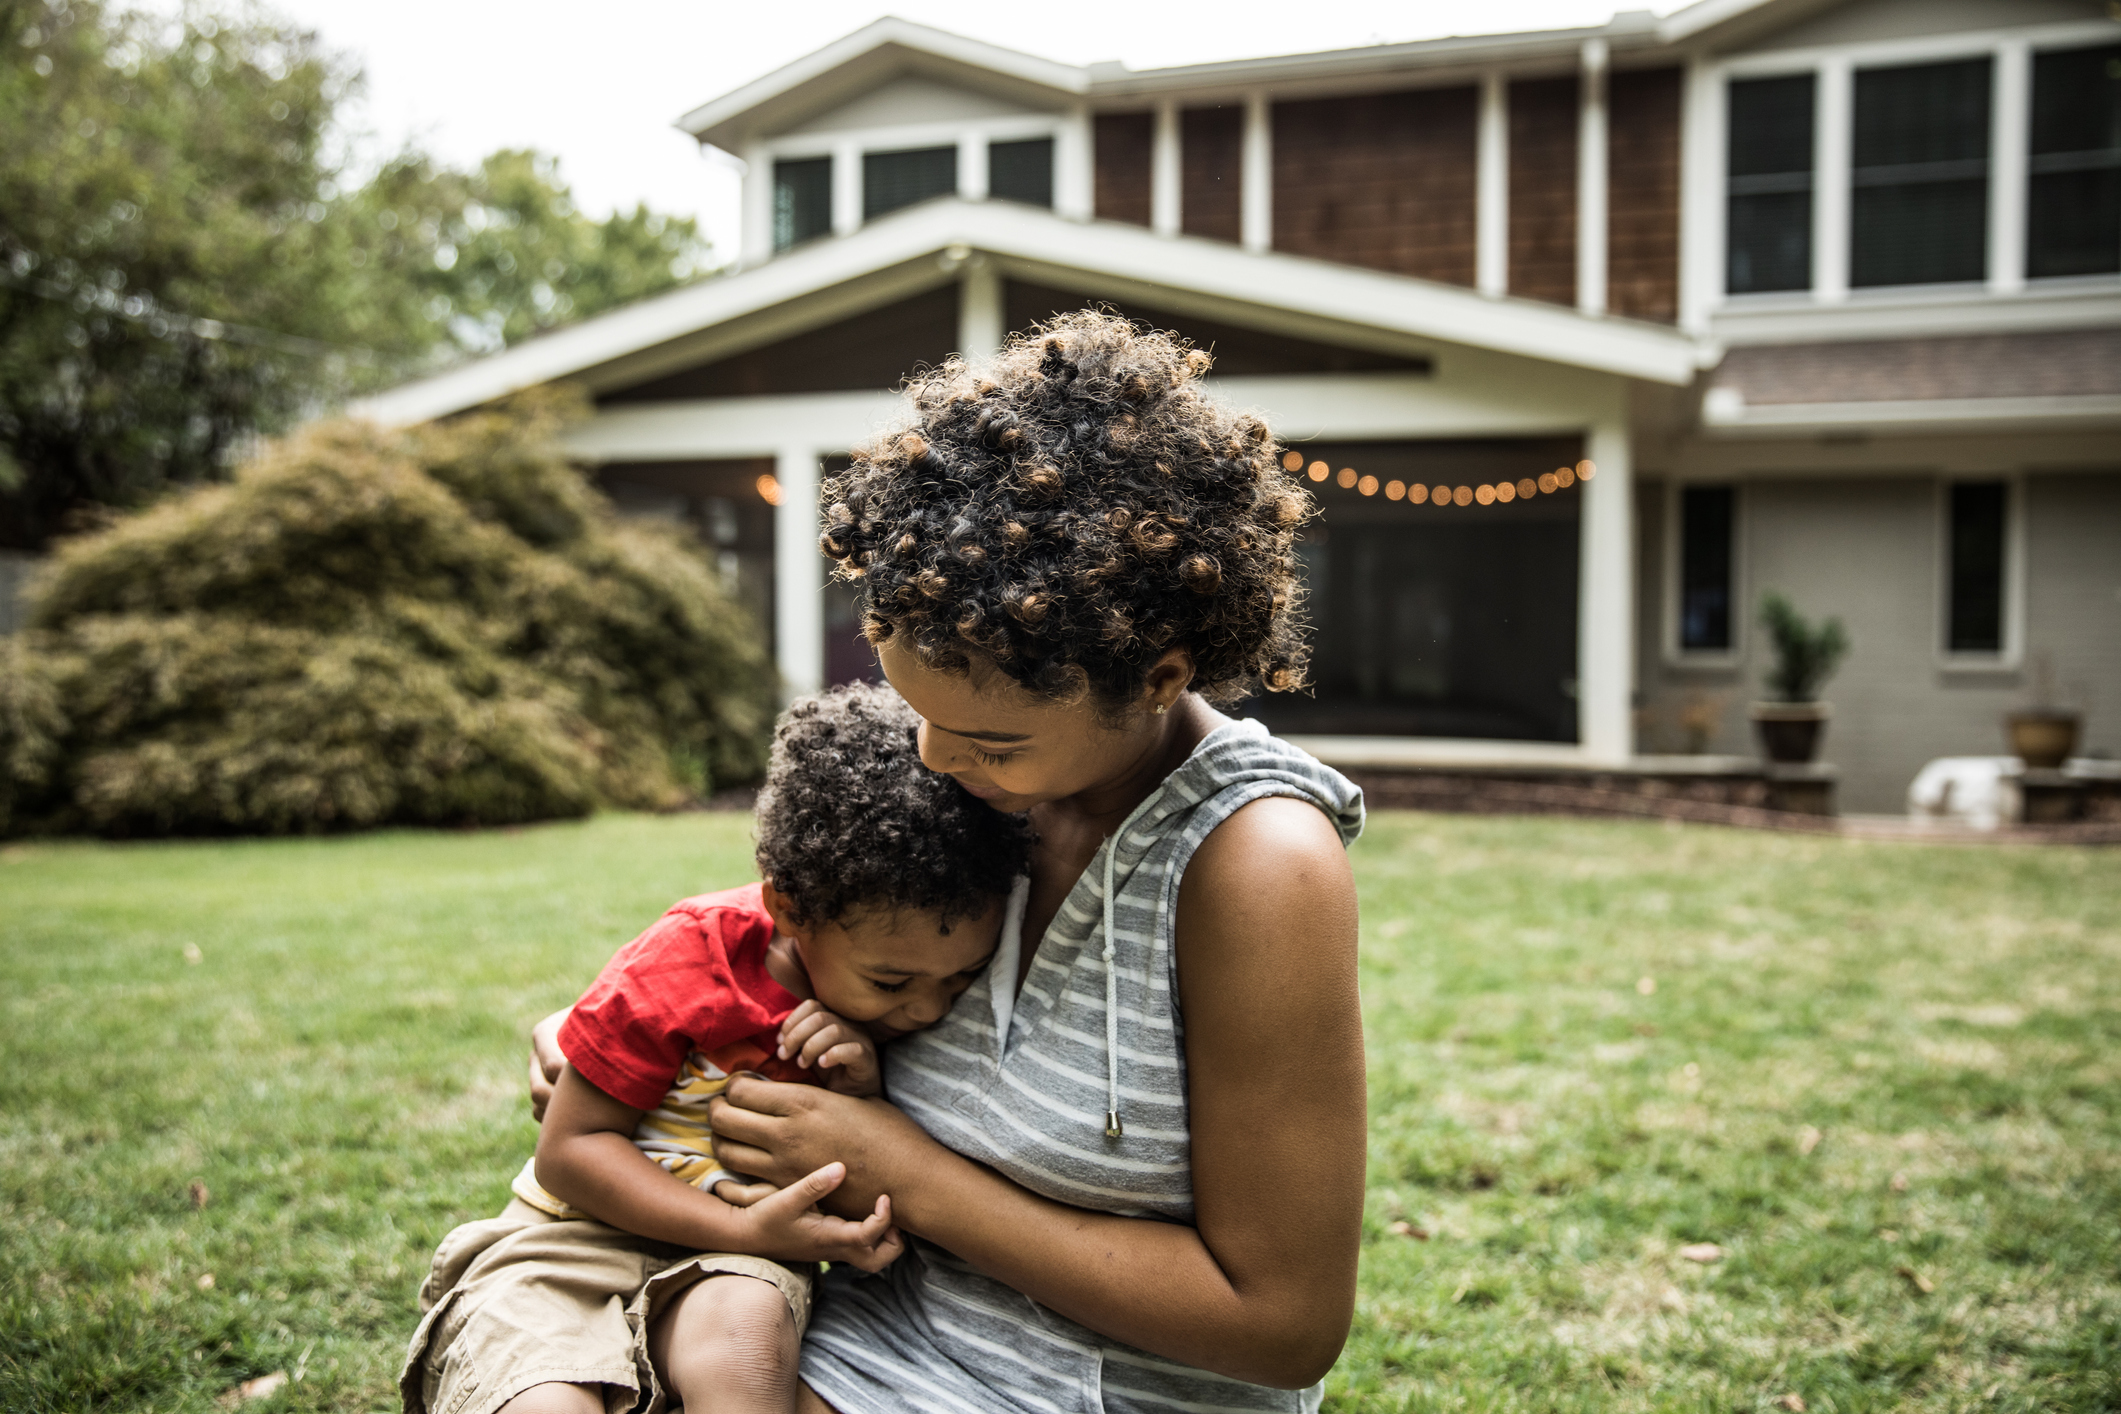 mother, toddler sit in grass in front of 2-story house